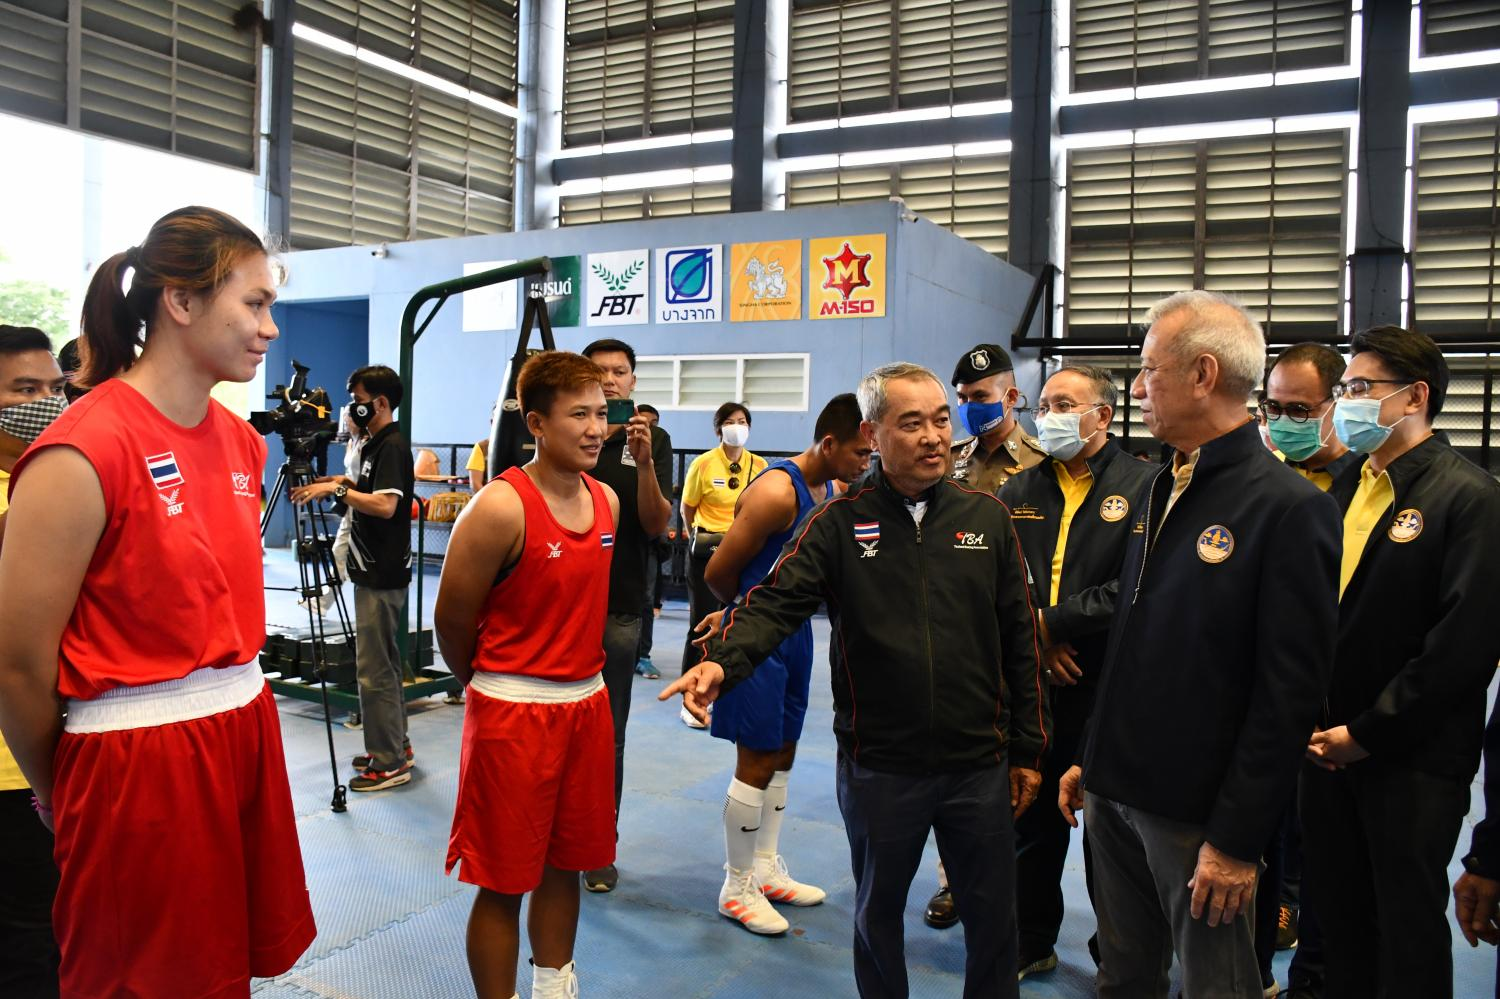 Minister of Tourism and Sports Phiphat Ratchakitprakarn (right) speaks to the members of the Thai national boxing team.